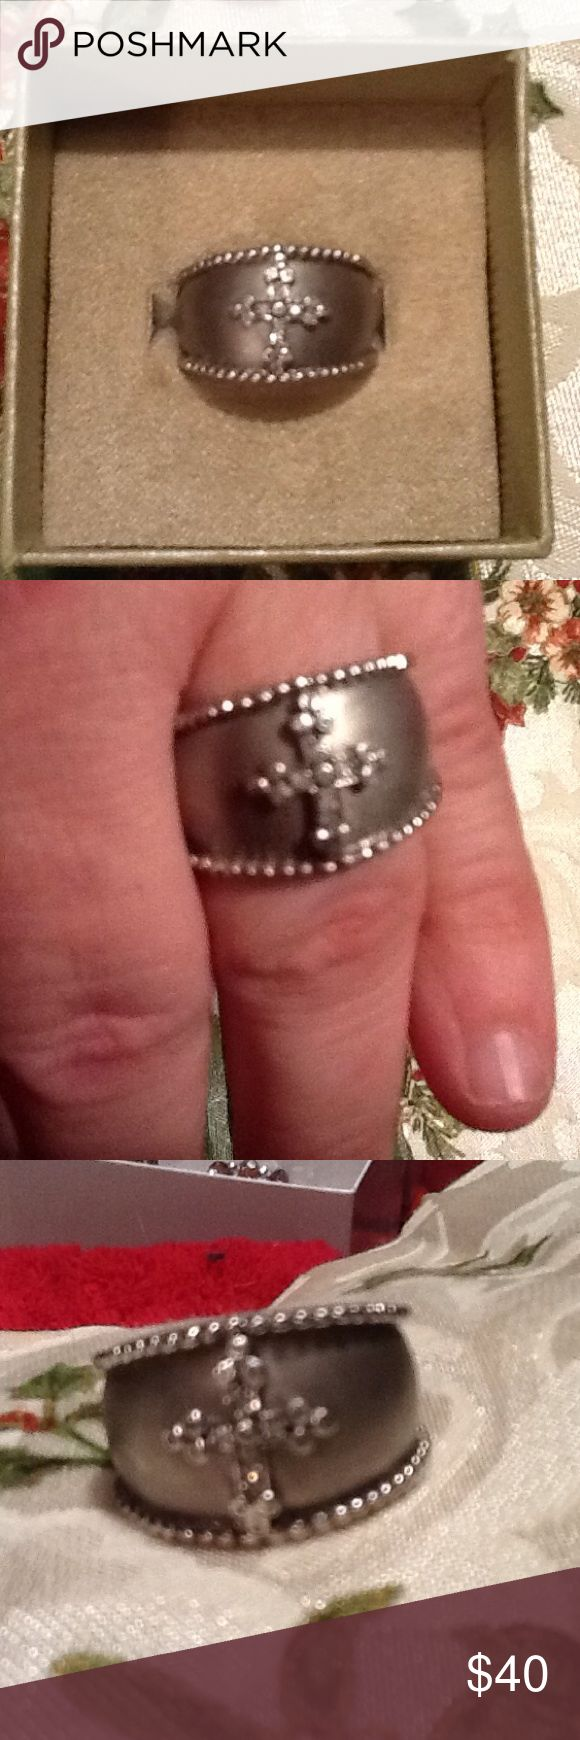 Wide silver cross ring Brand new 925 silver wide band ring with central raised embossed cross with iridescent tiny crystals.  Purchased on QVC or HSN. Jewelry Rings